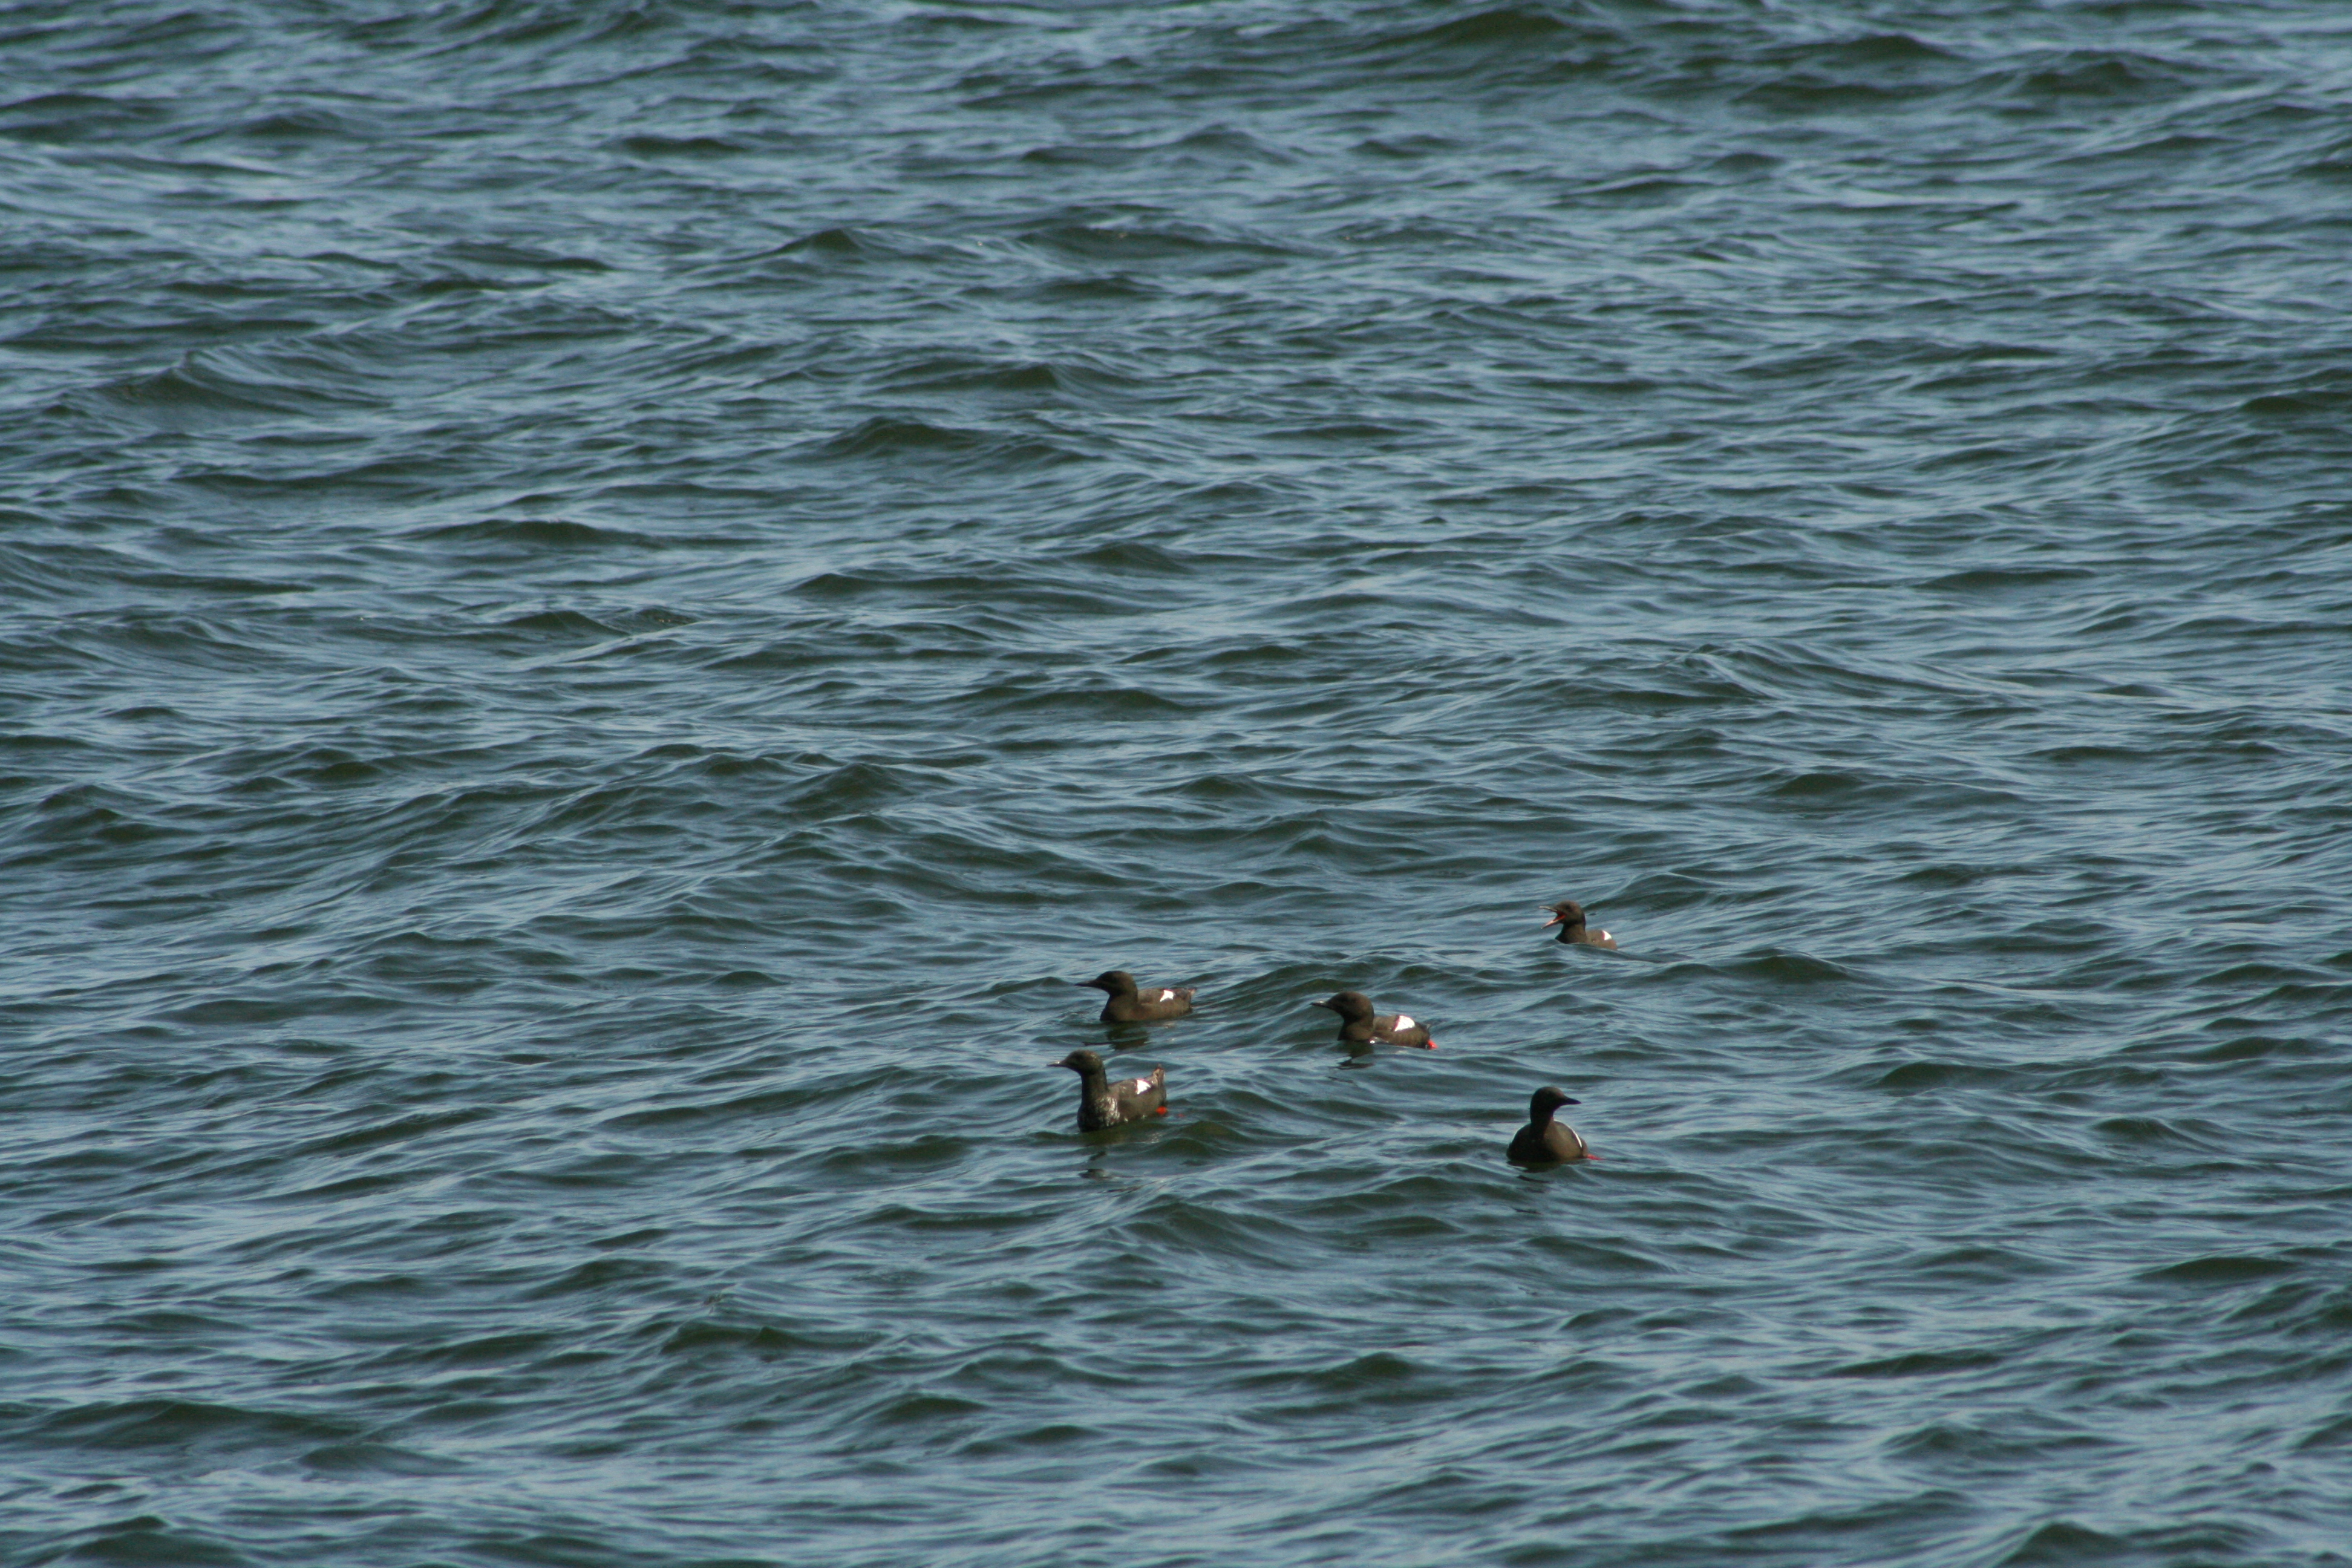 5 black guillemots on water.